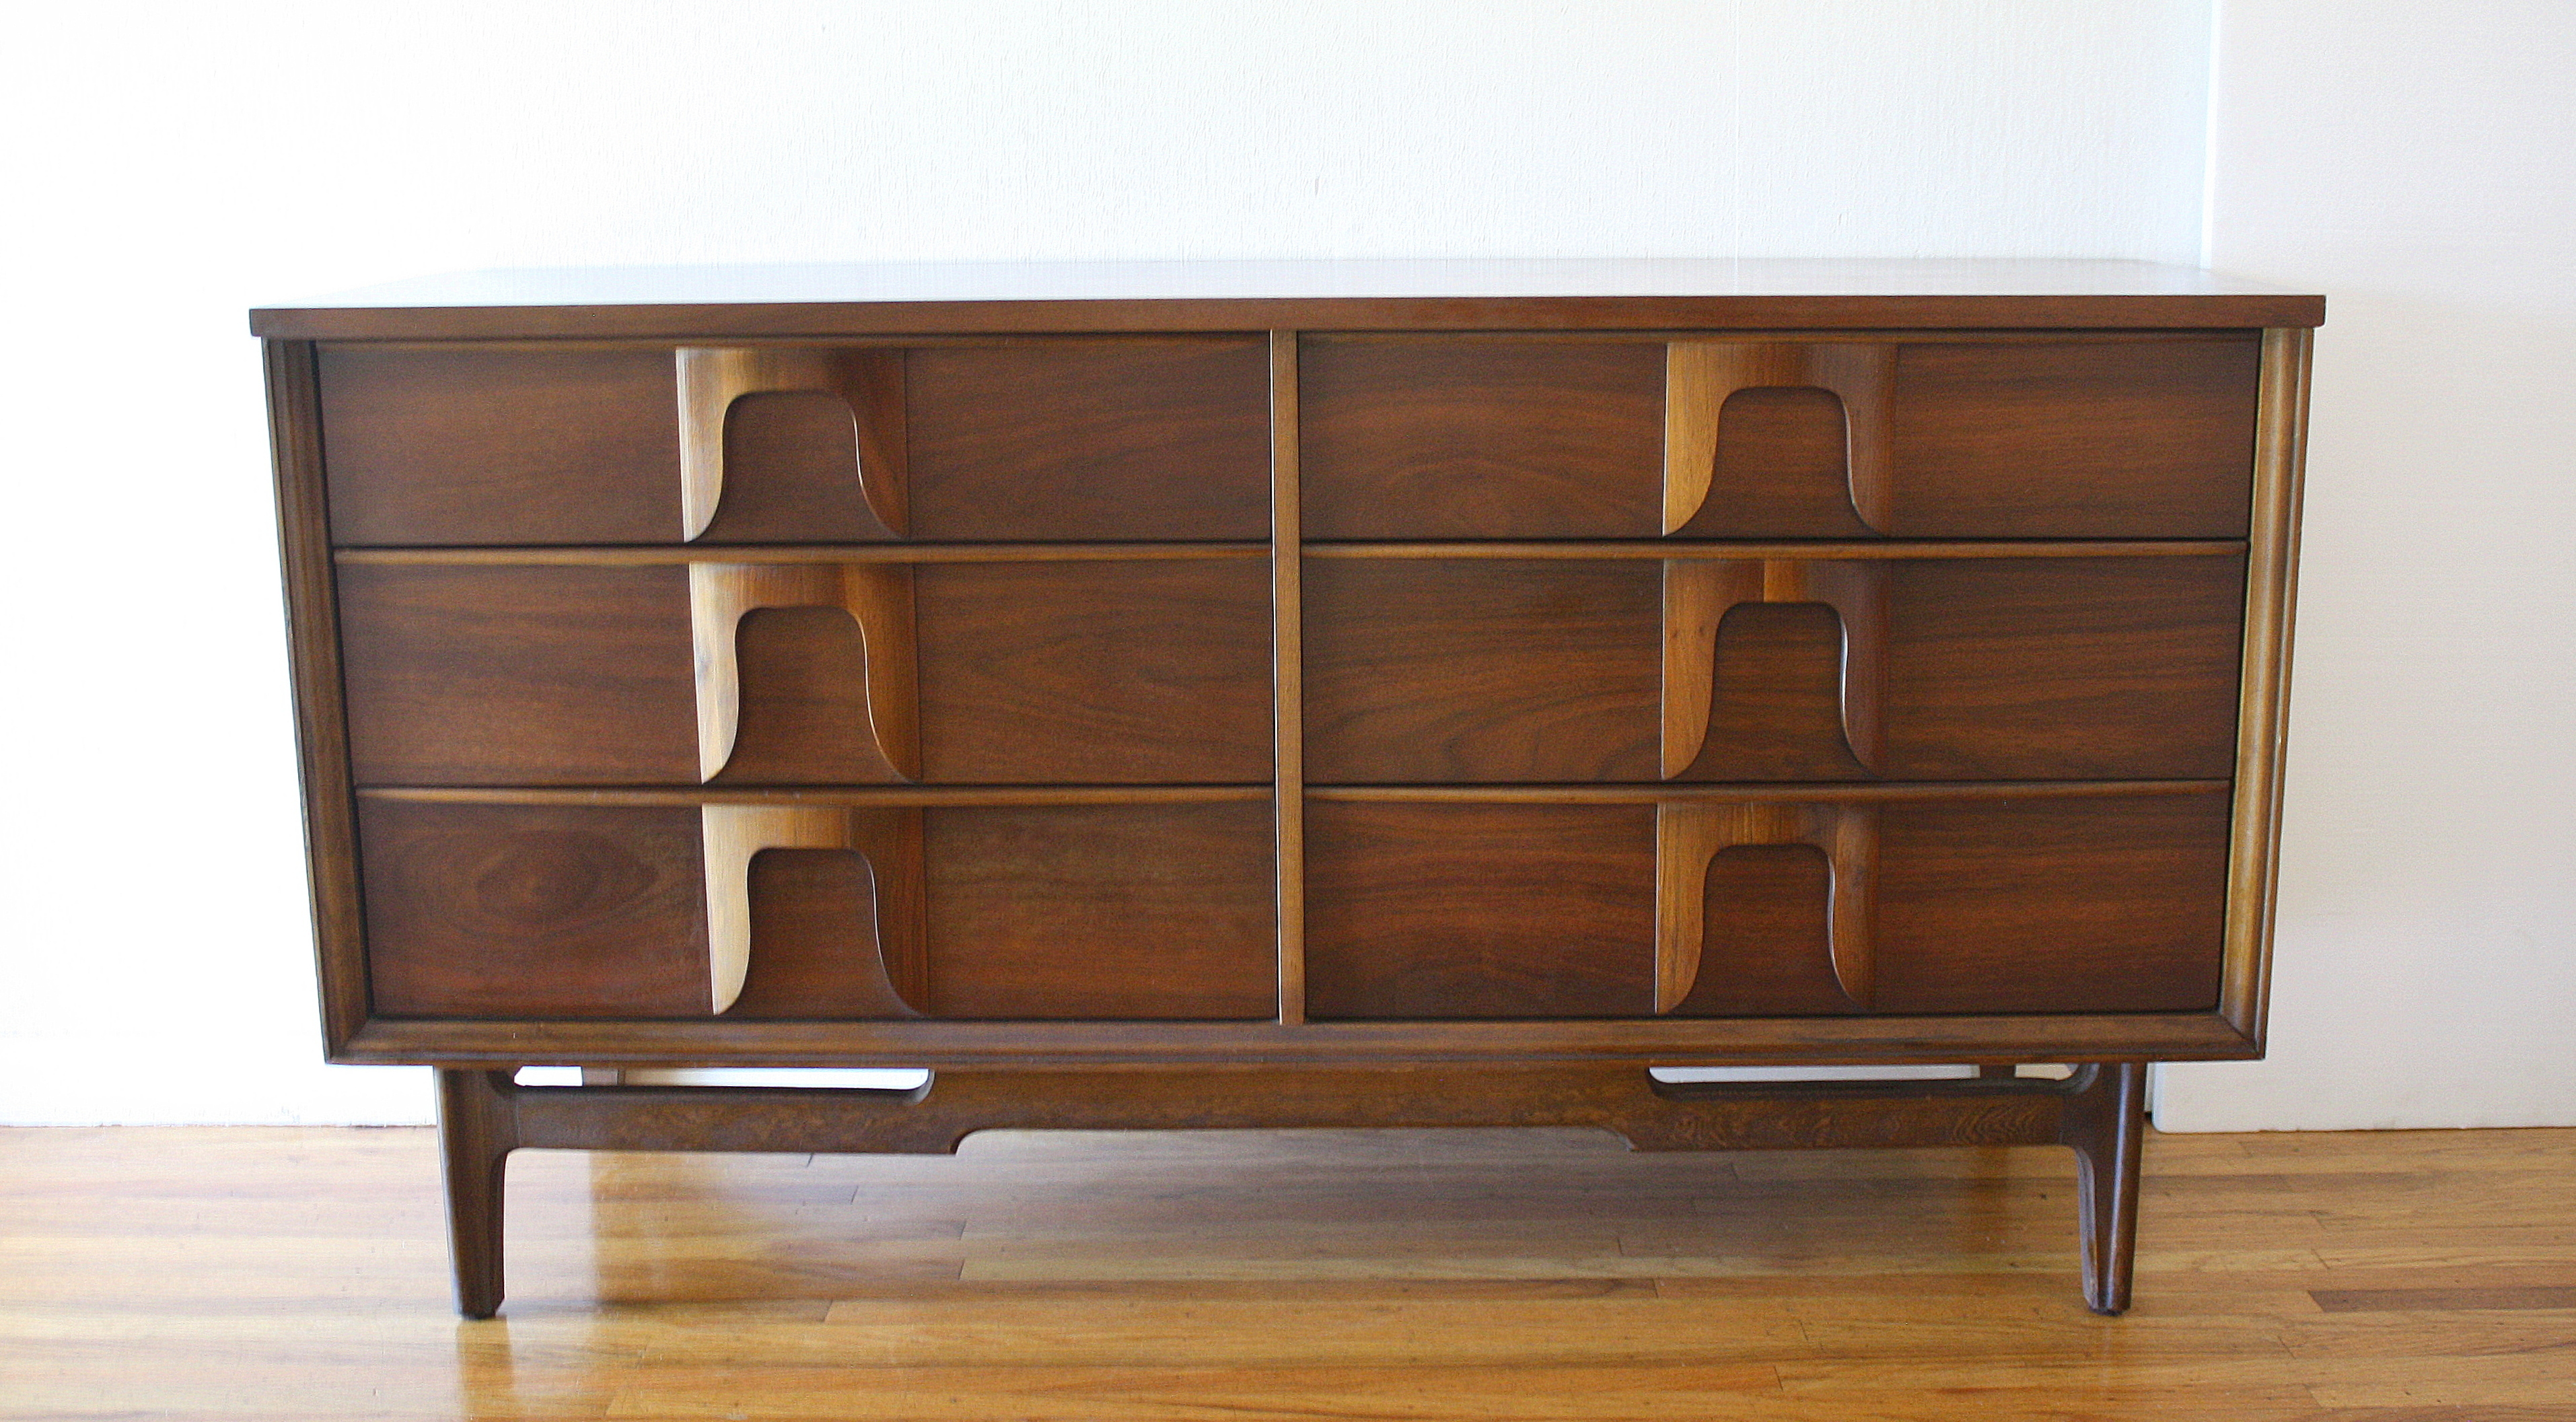 mcm low dresser credenza with sculpted wood handles 1.JPG